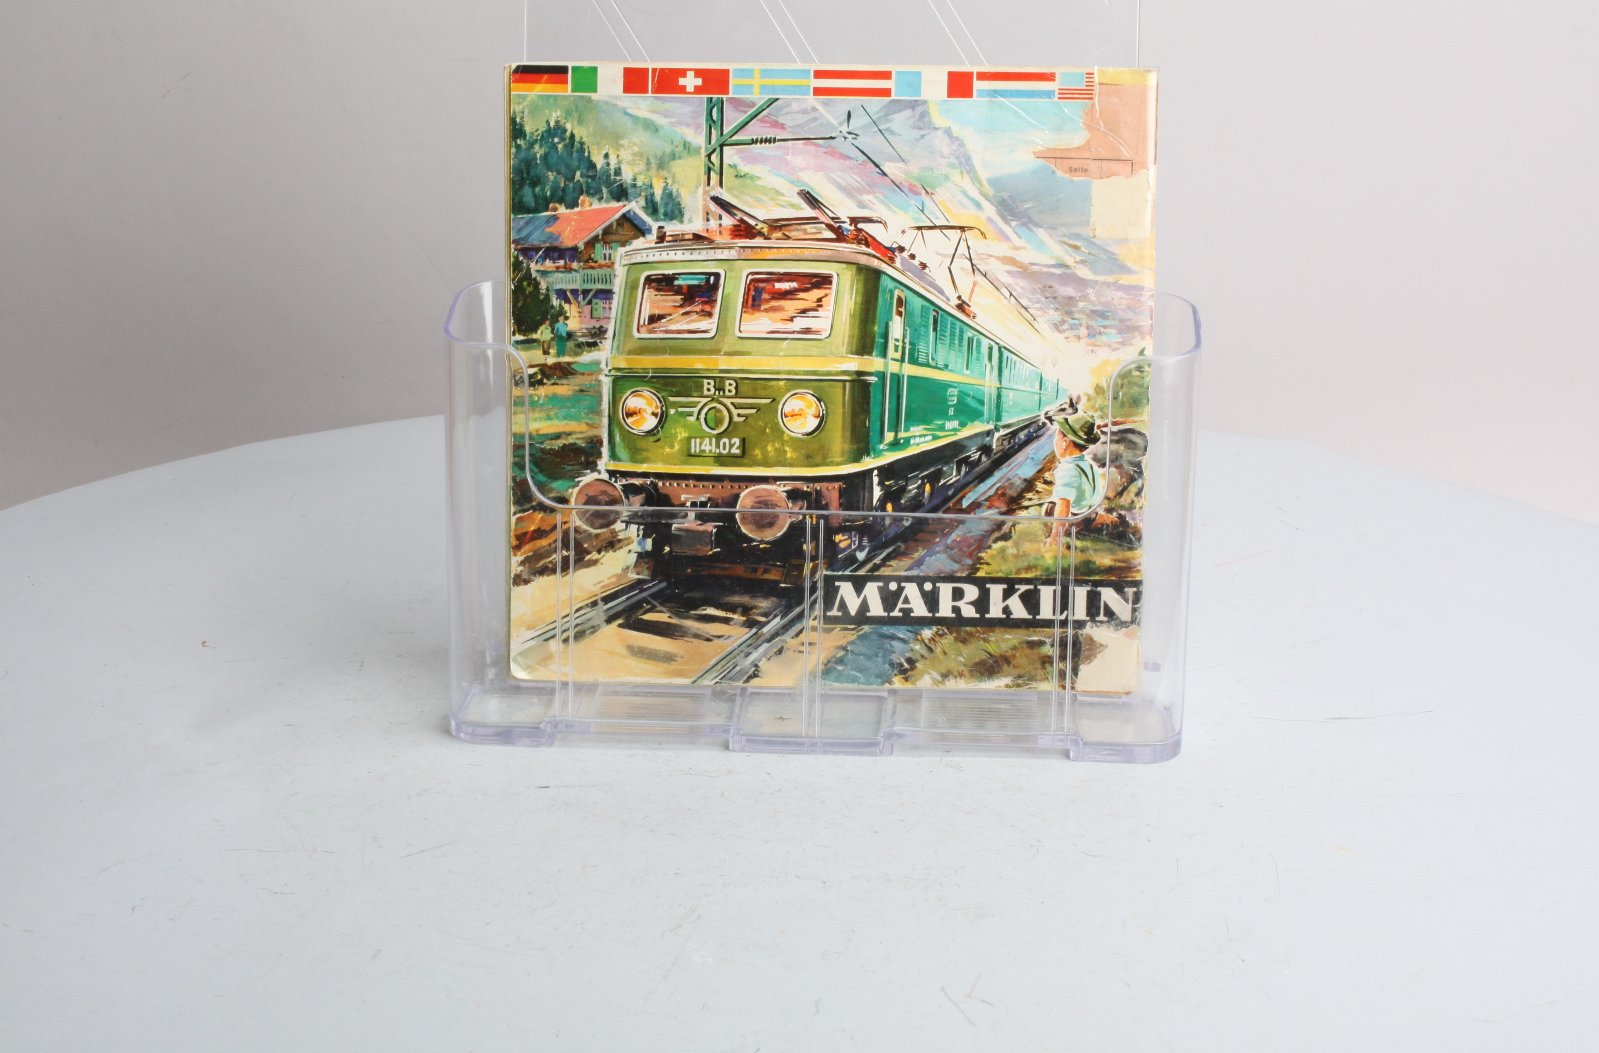 Buy Marklin 1961/62 Product Catalog | Trainz Auctions